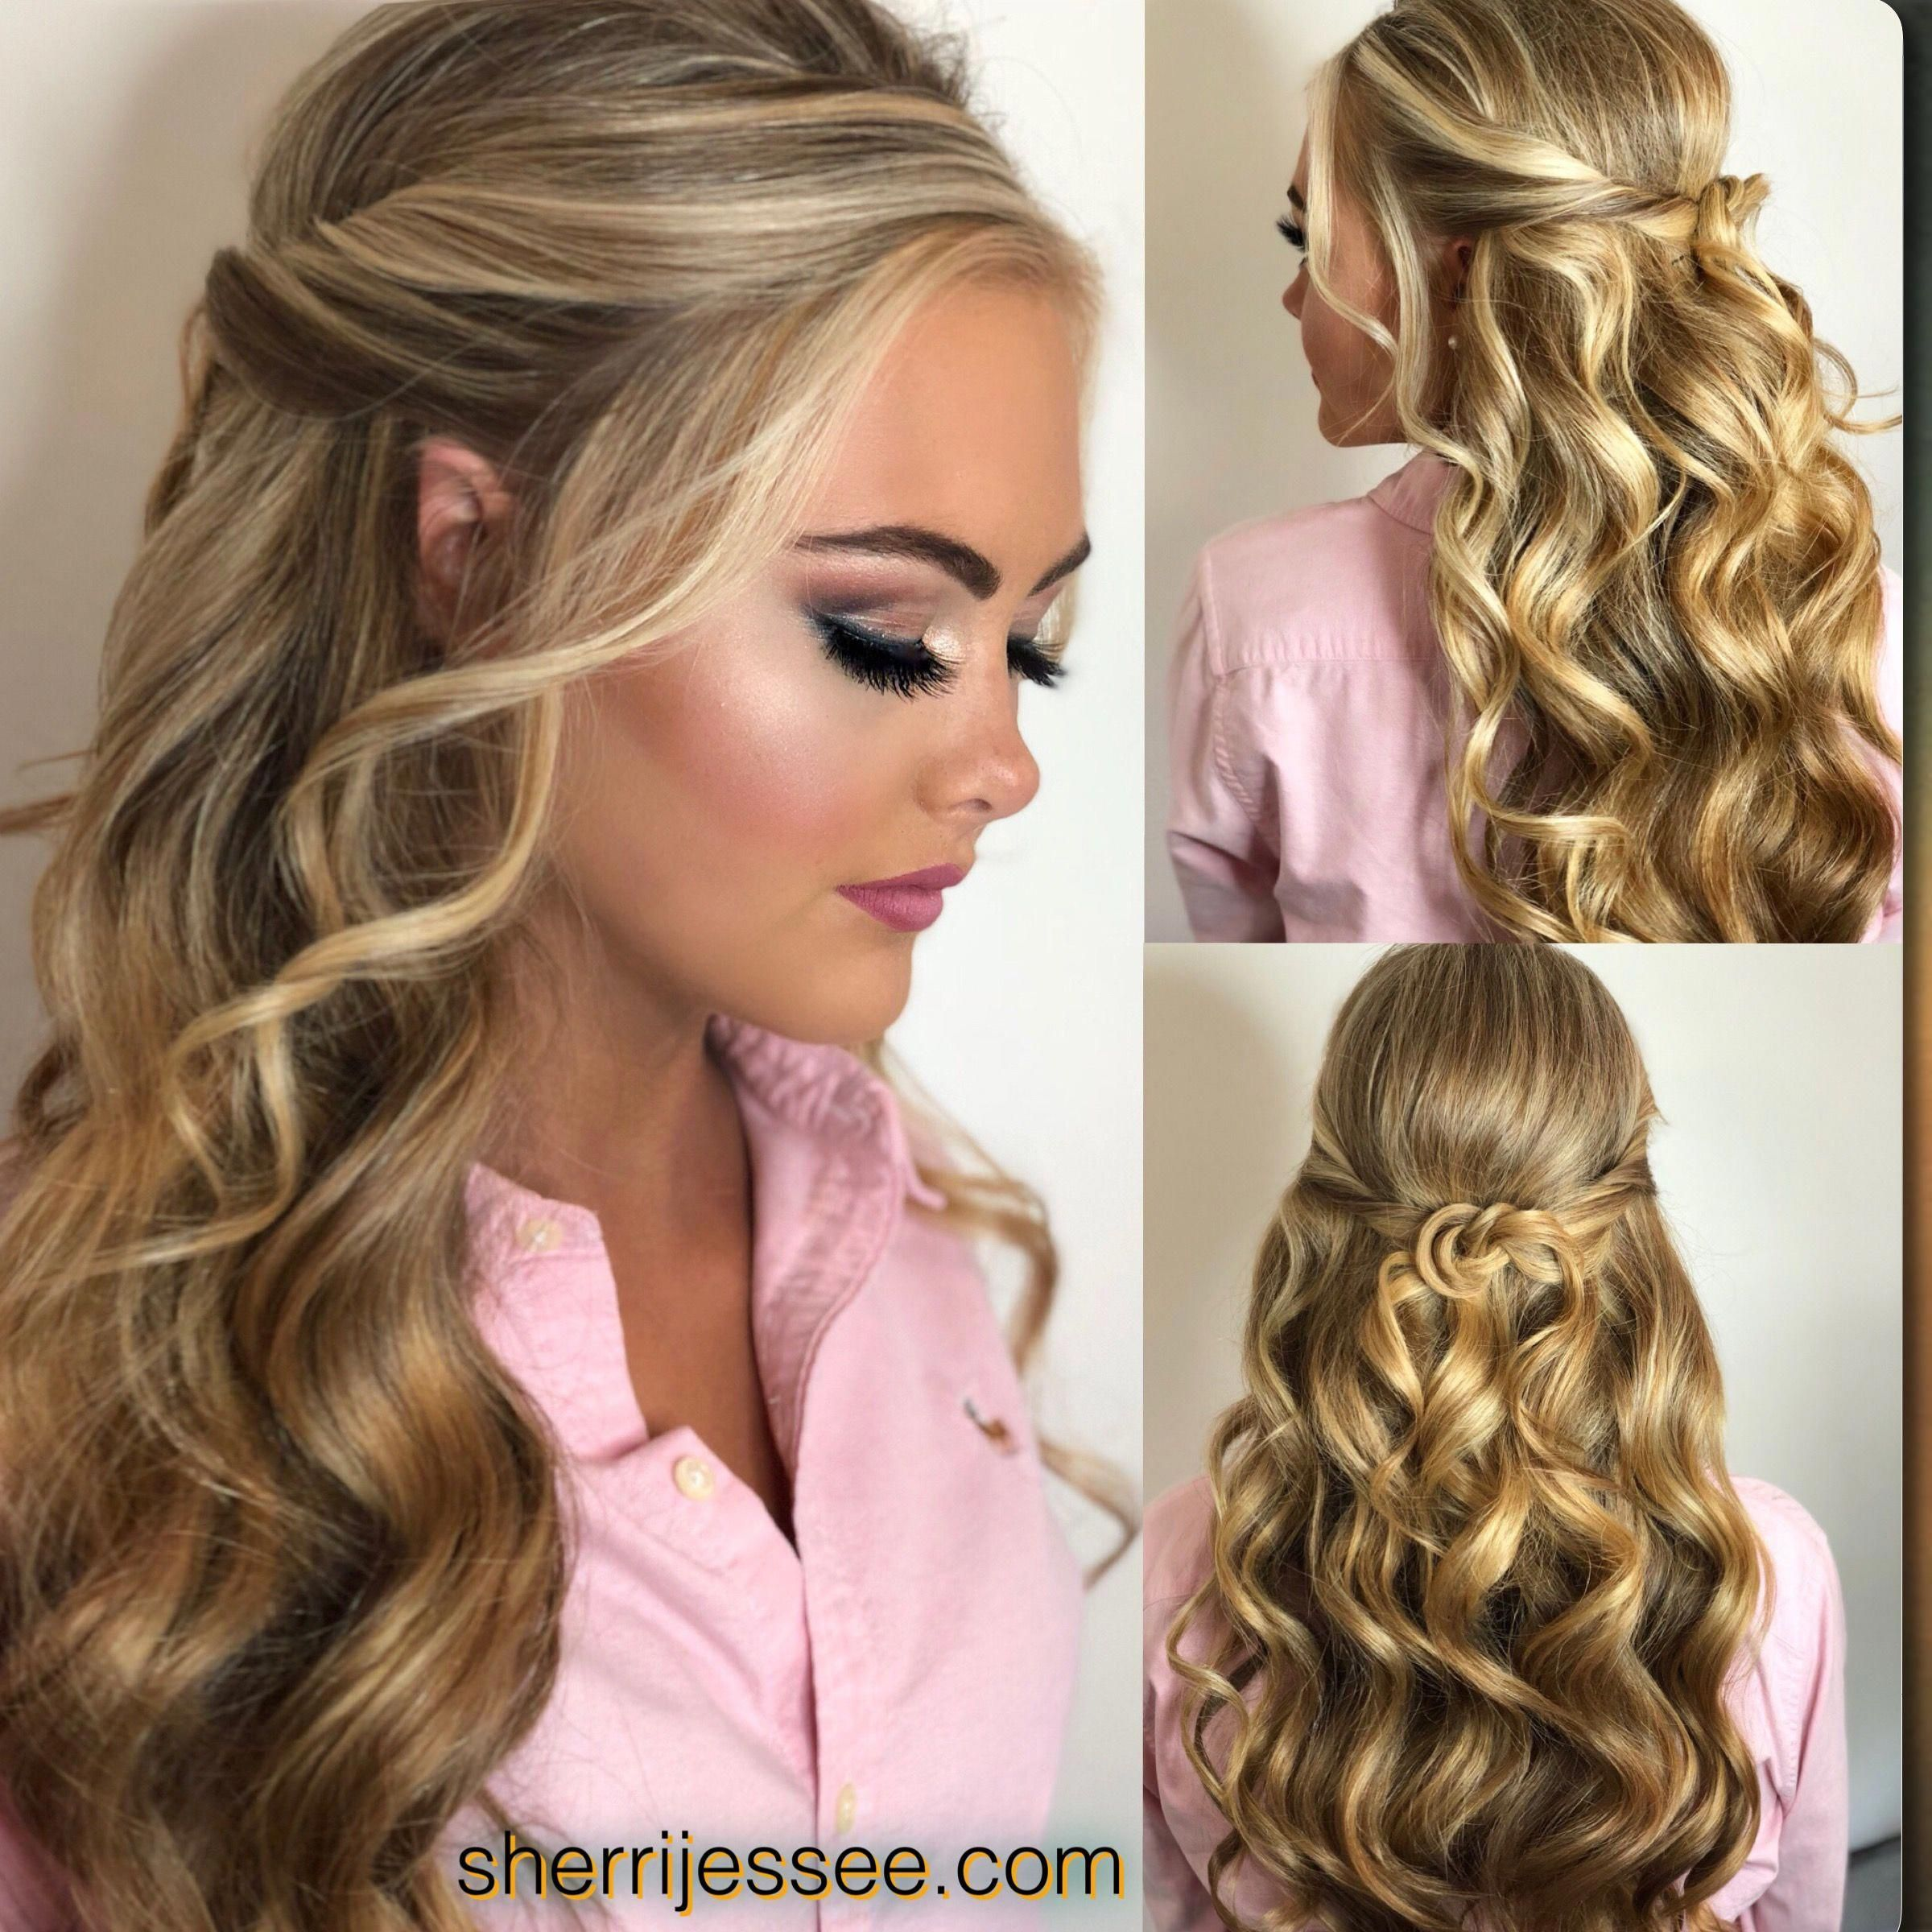 145 Exquisite Wedding Hairstyles For All Hair Types: Prom Hairstyles For Long Hair